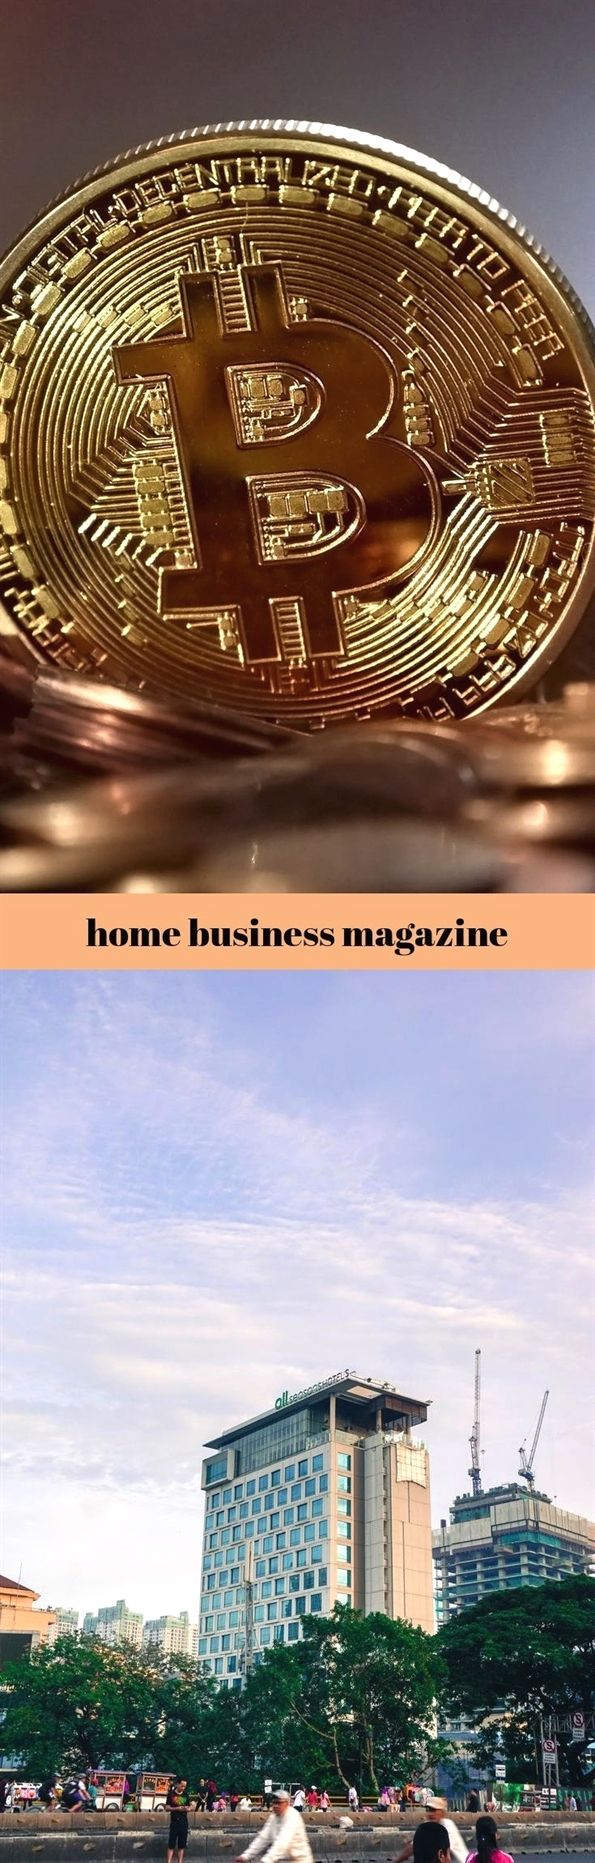 Home Business Magazine 6 20180809090325 49 Home Business Ideas And